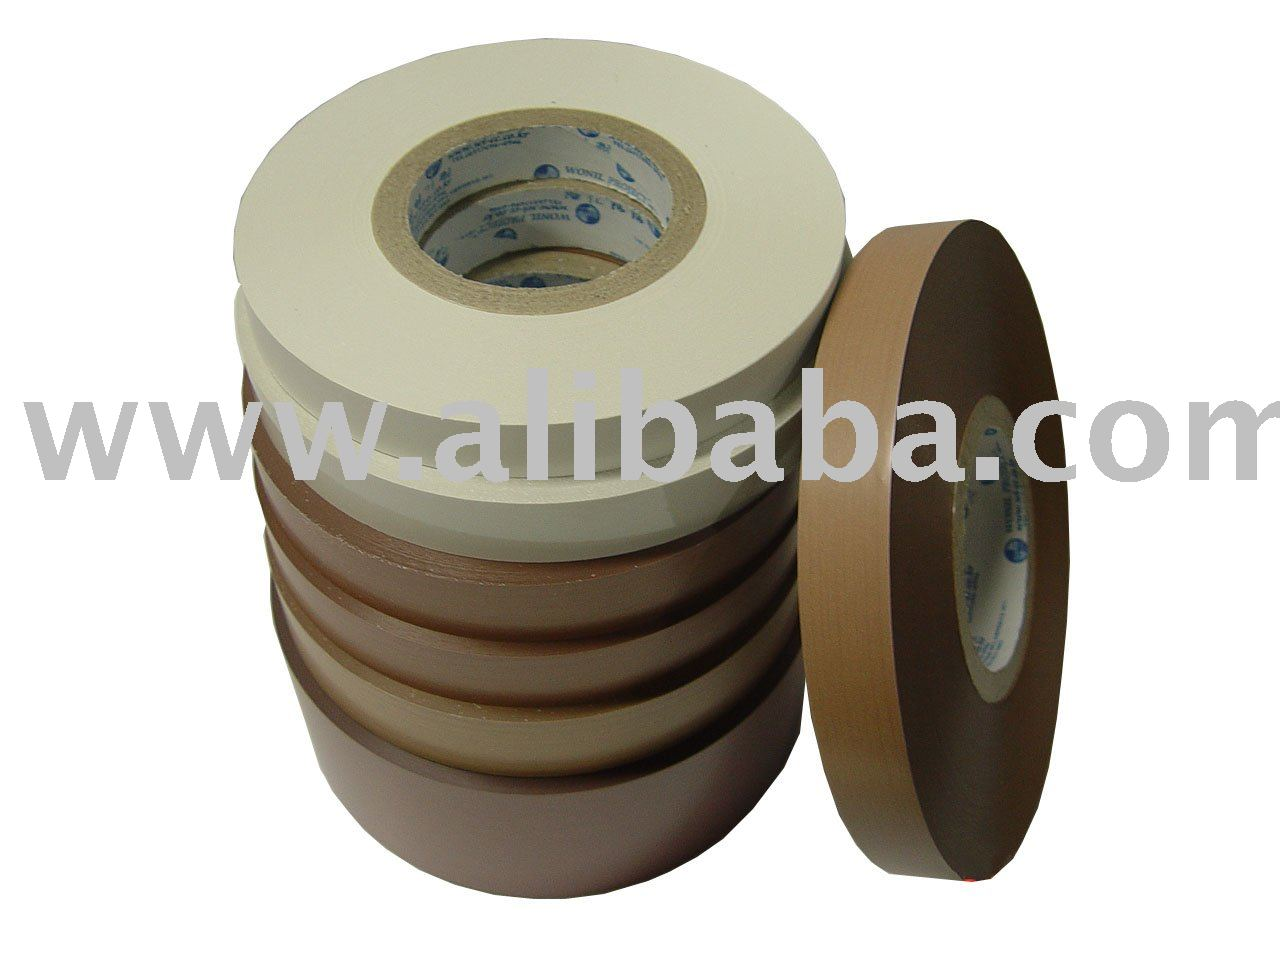 Hot stamping foil for MDF substrate